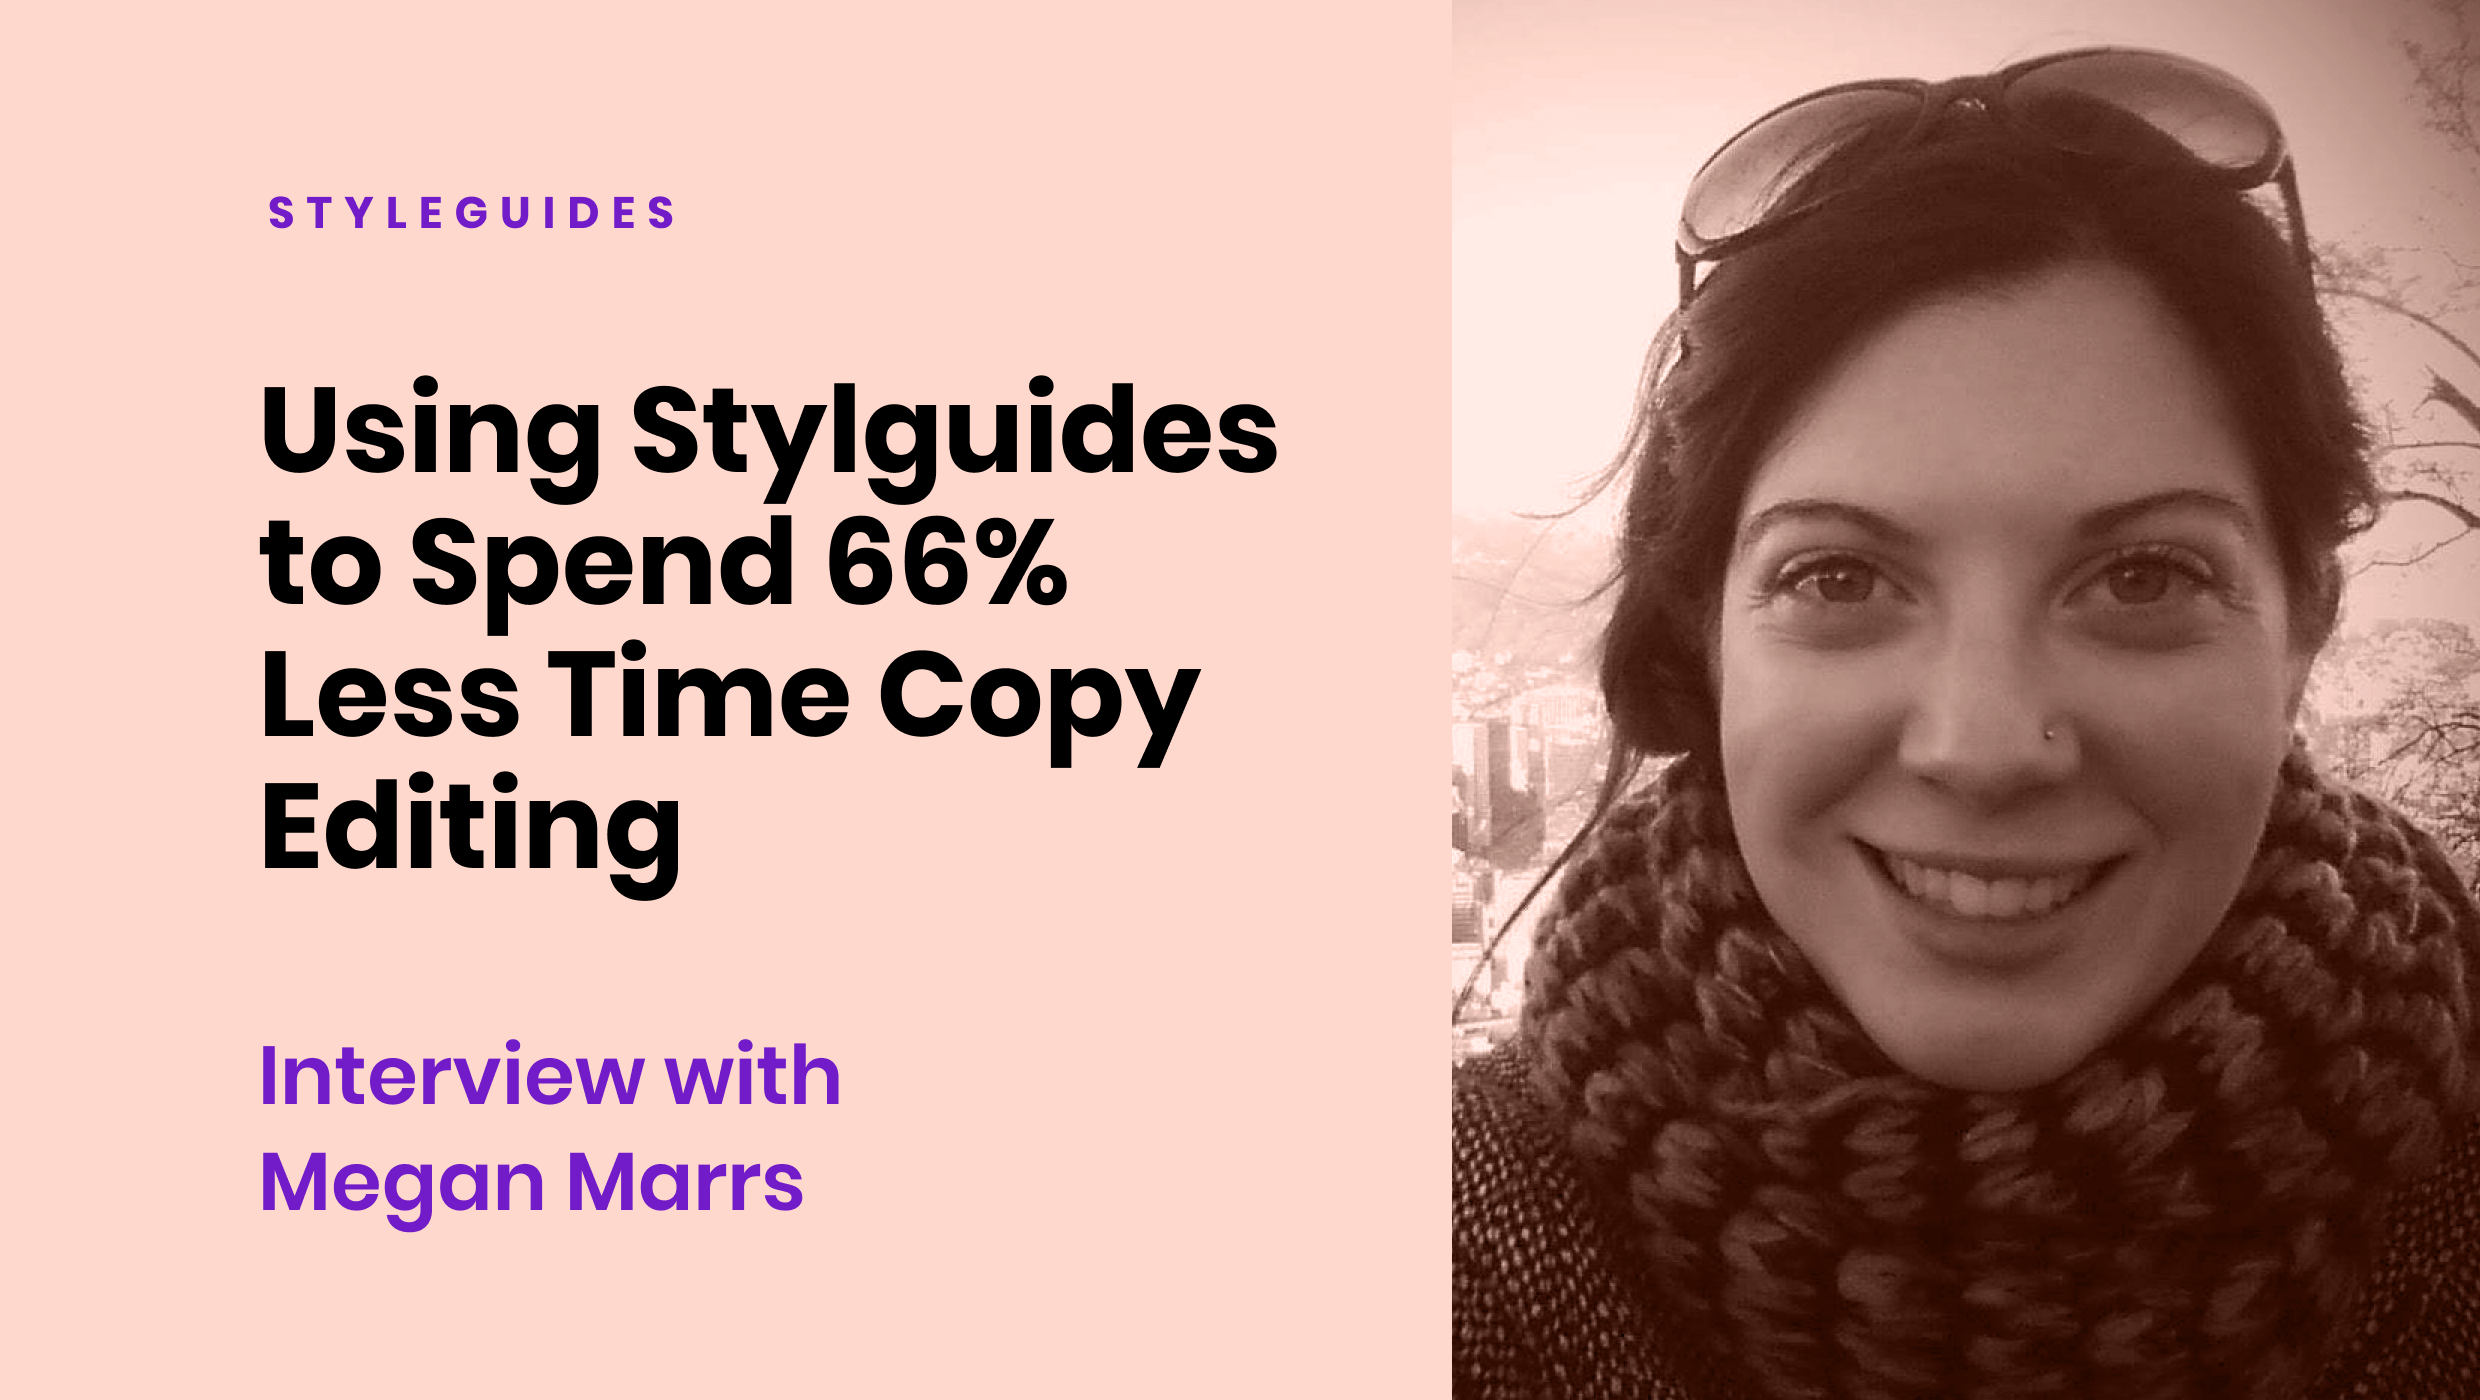 Using styleguides to spend 66% less time copy editing: interview with Megan Marrs